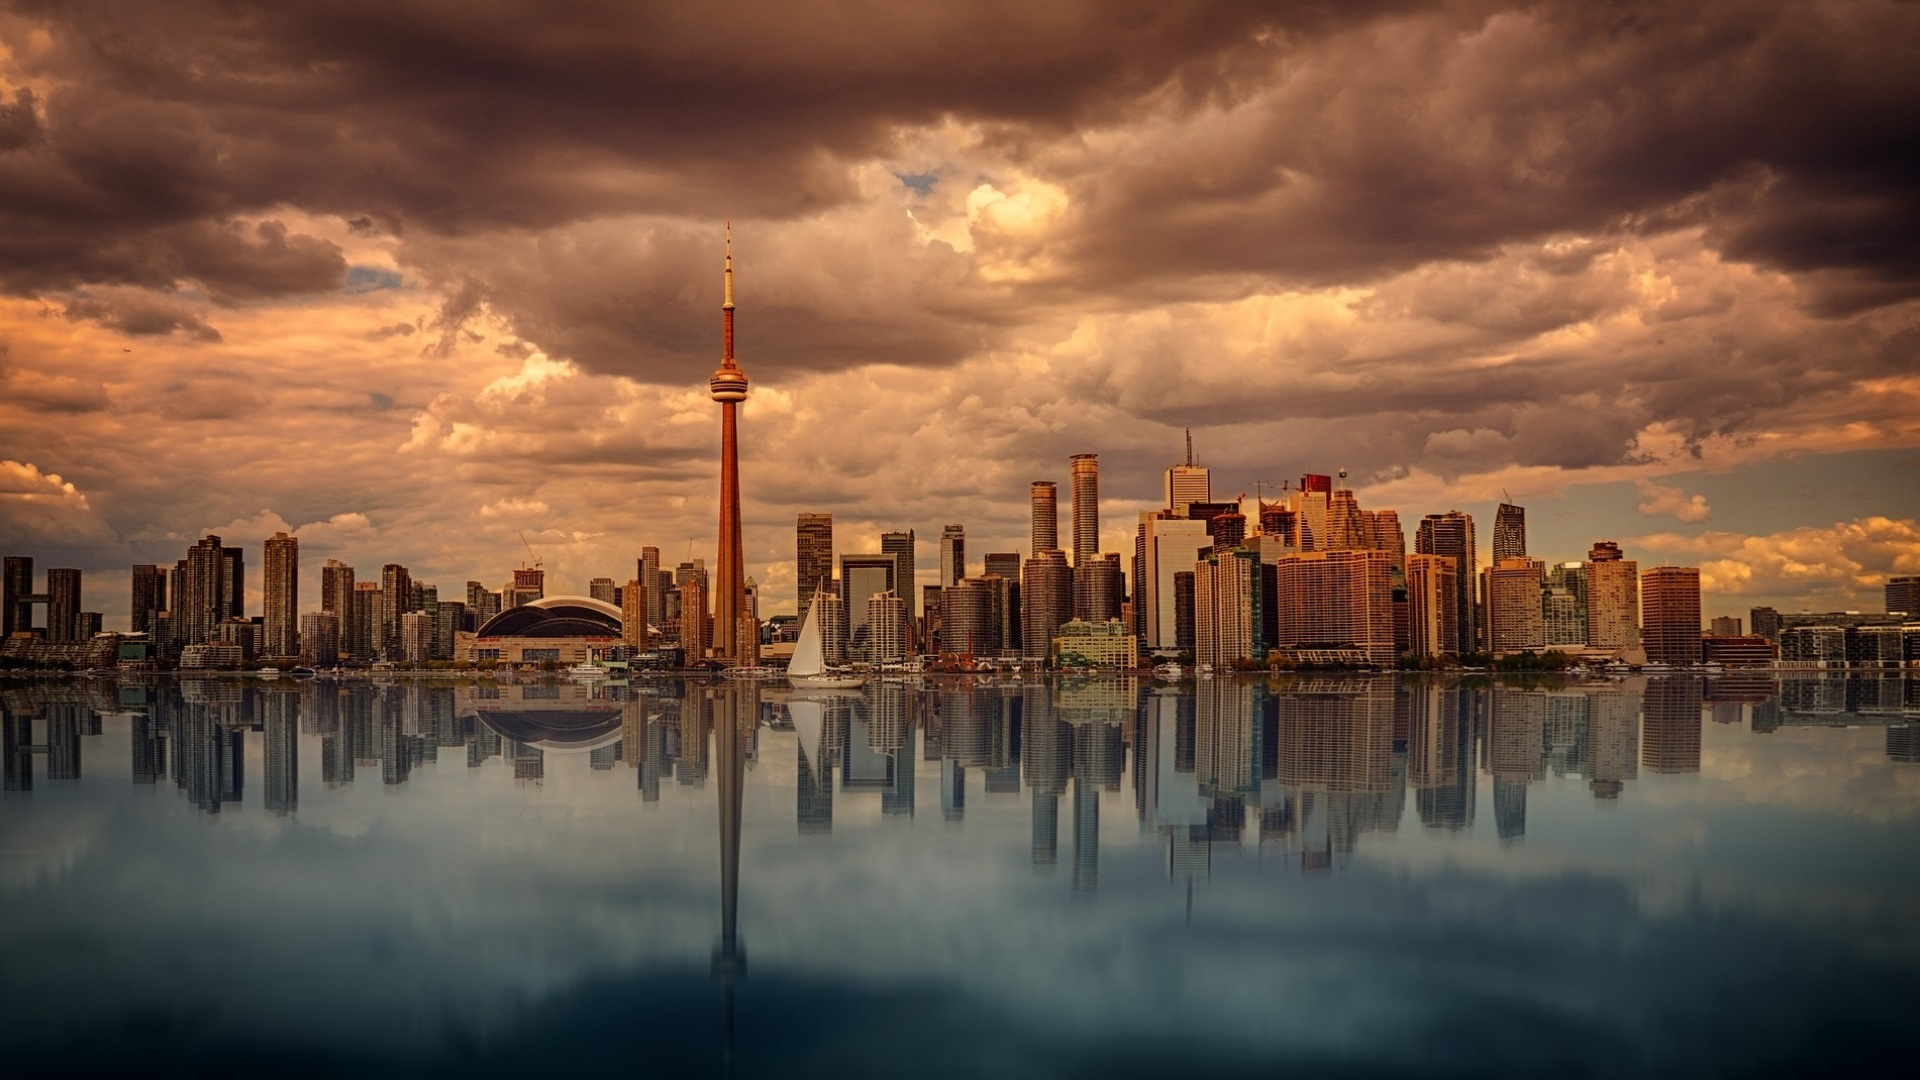 Toronto skyline on a cloudy day